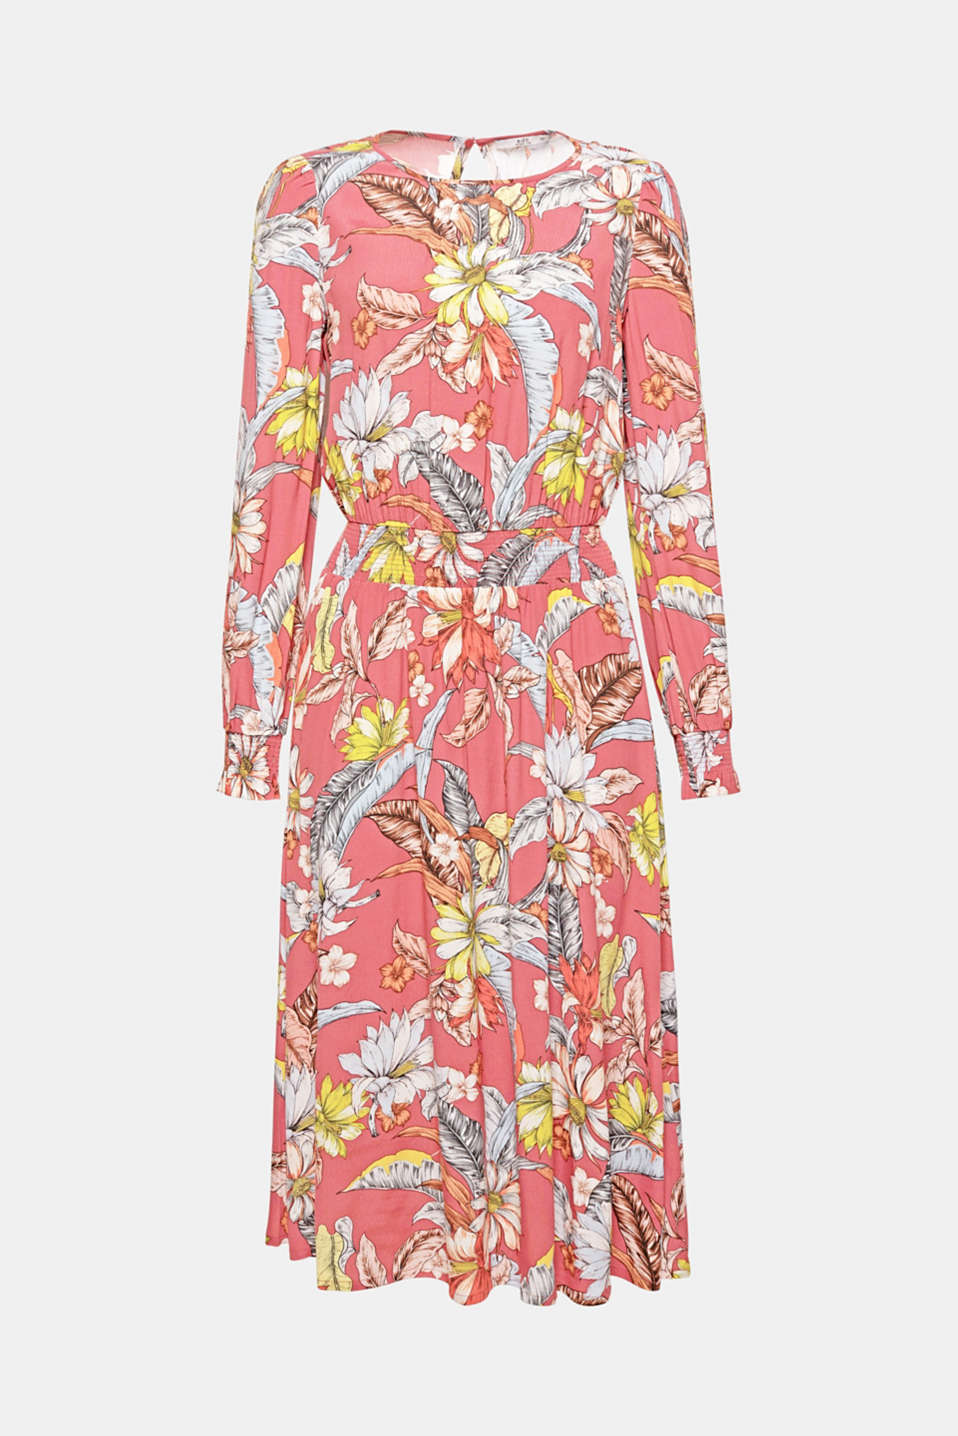 Feminine flowers: the stunning all-over print gives this softly draped, smock detail dress in a fashionable midi length additional charm!